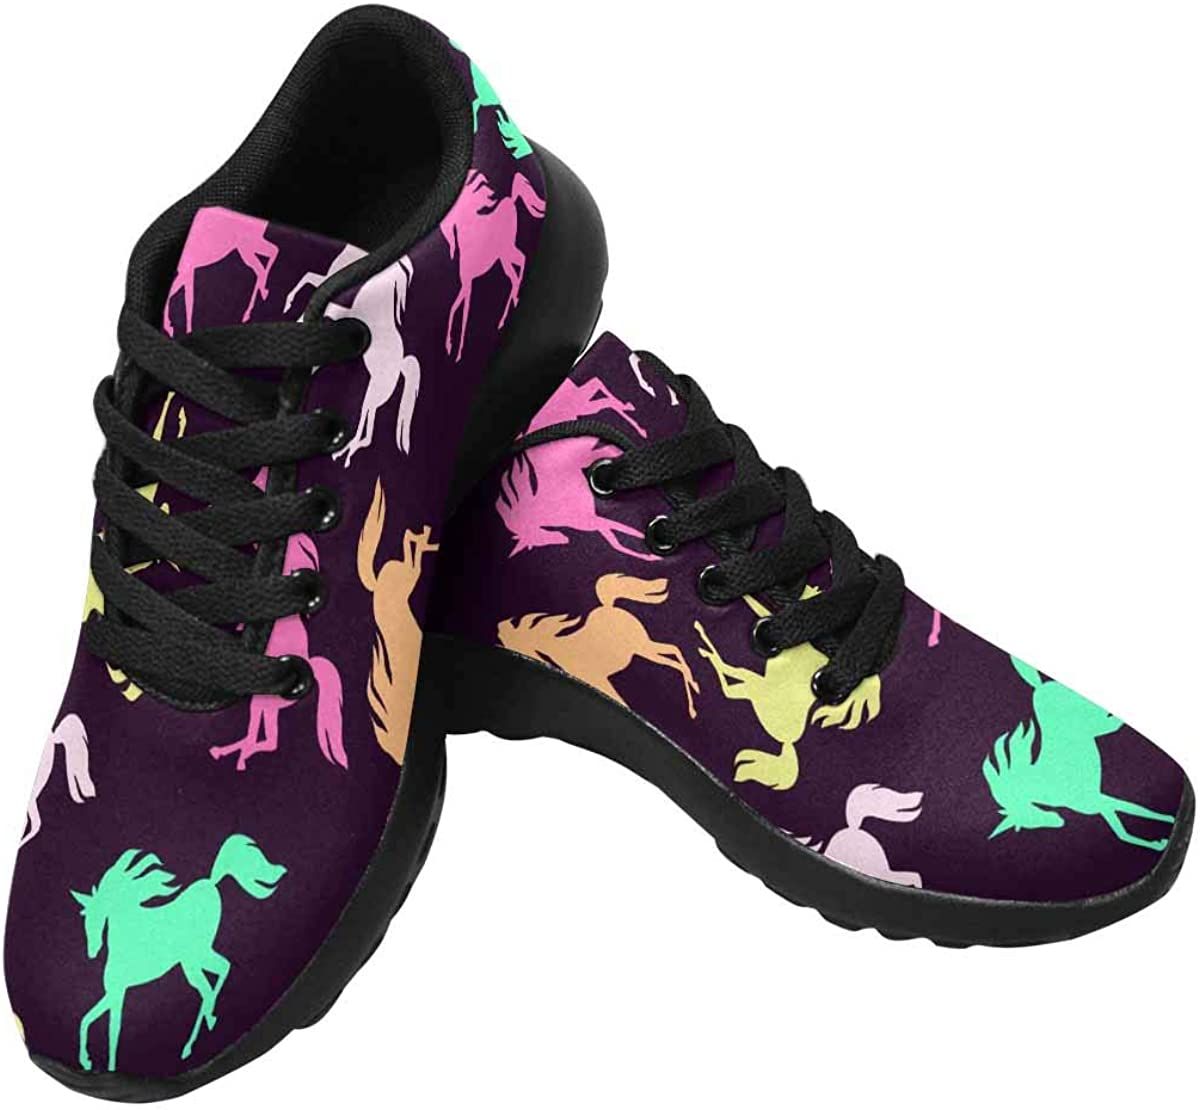 INTERESTPRINT Womens Jogging Sneakers Outdoor Sport Cross Training Shoes Realistic Unicorn Silhouette Pattern